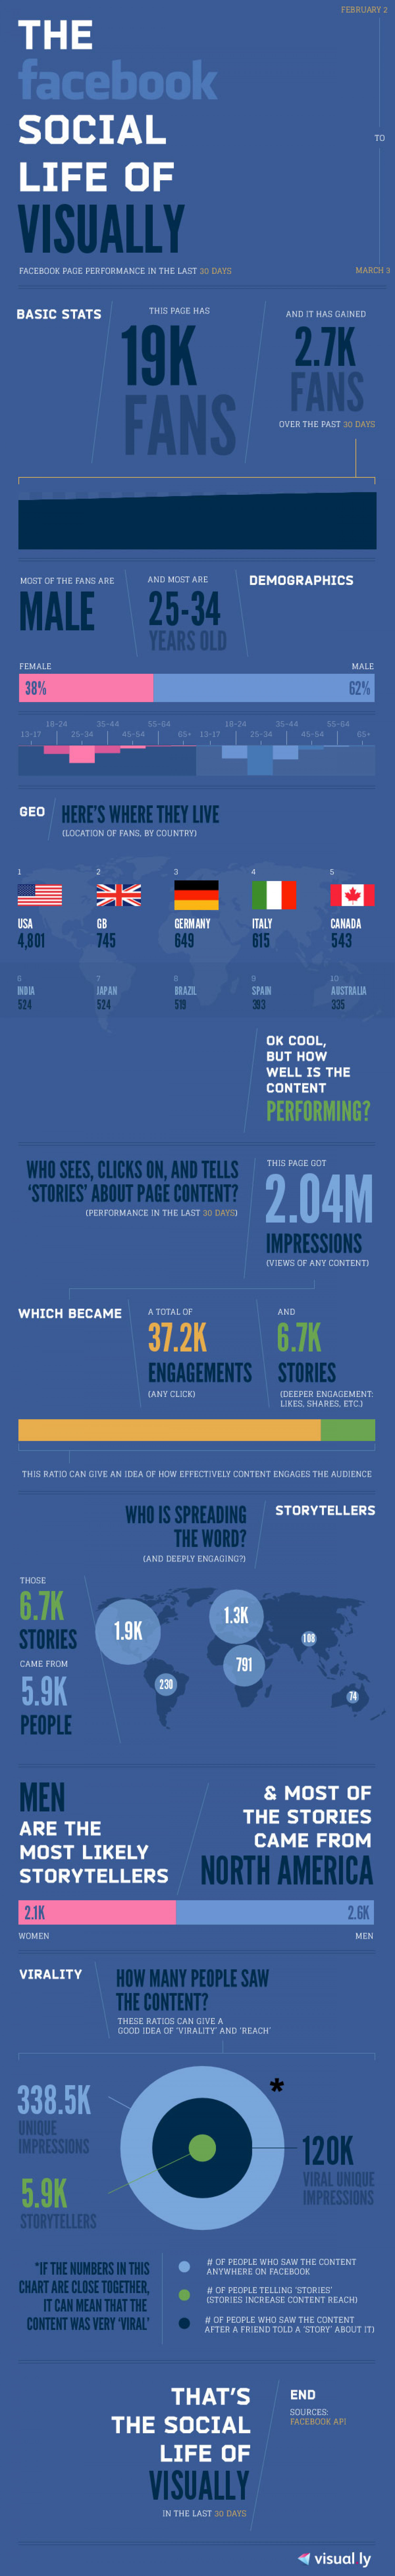 The Facebook Social Life of Visually Infographic